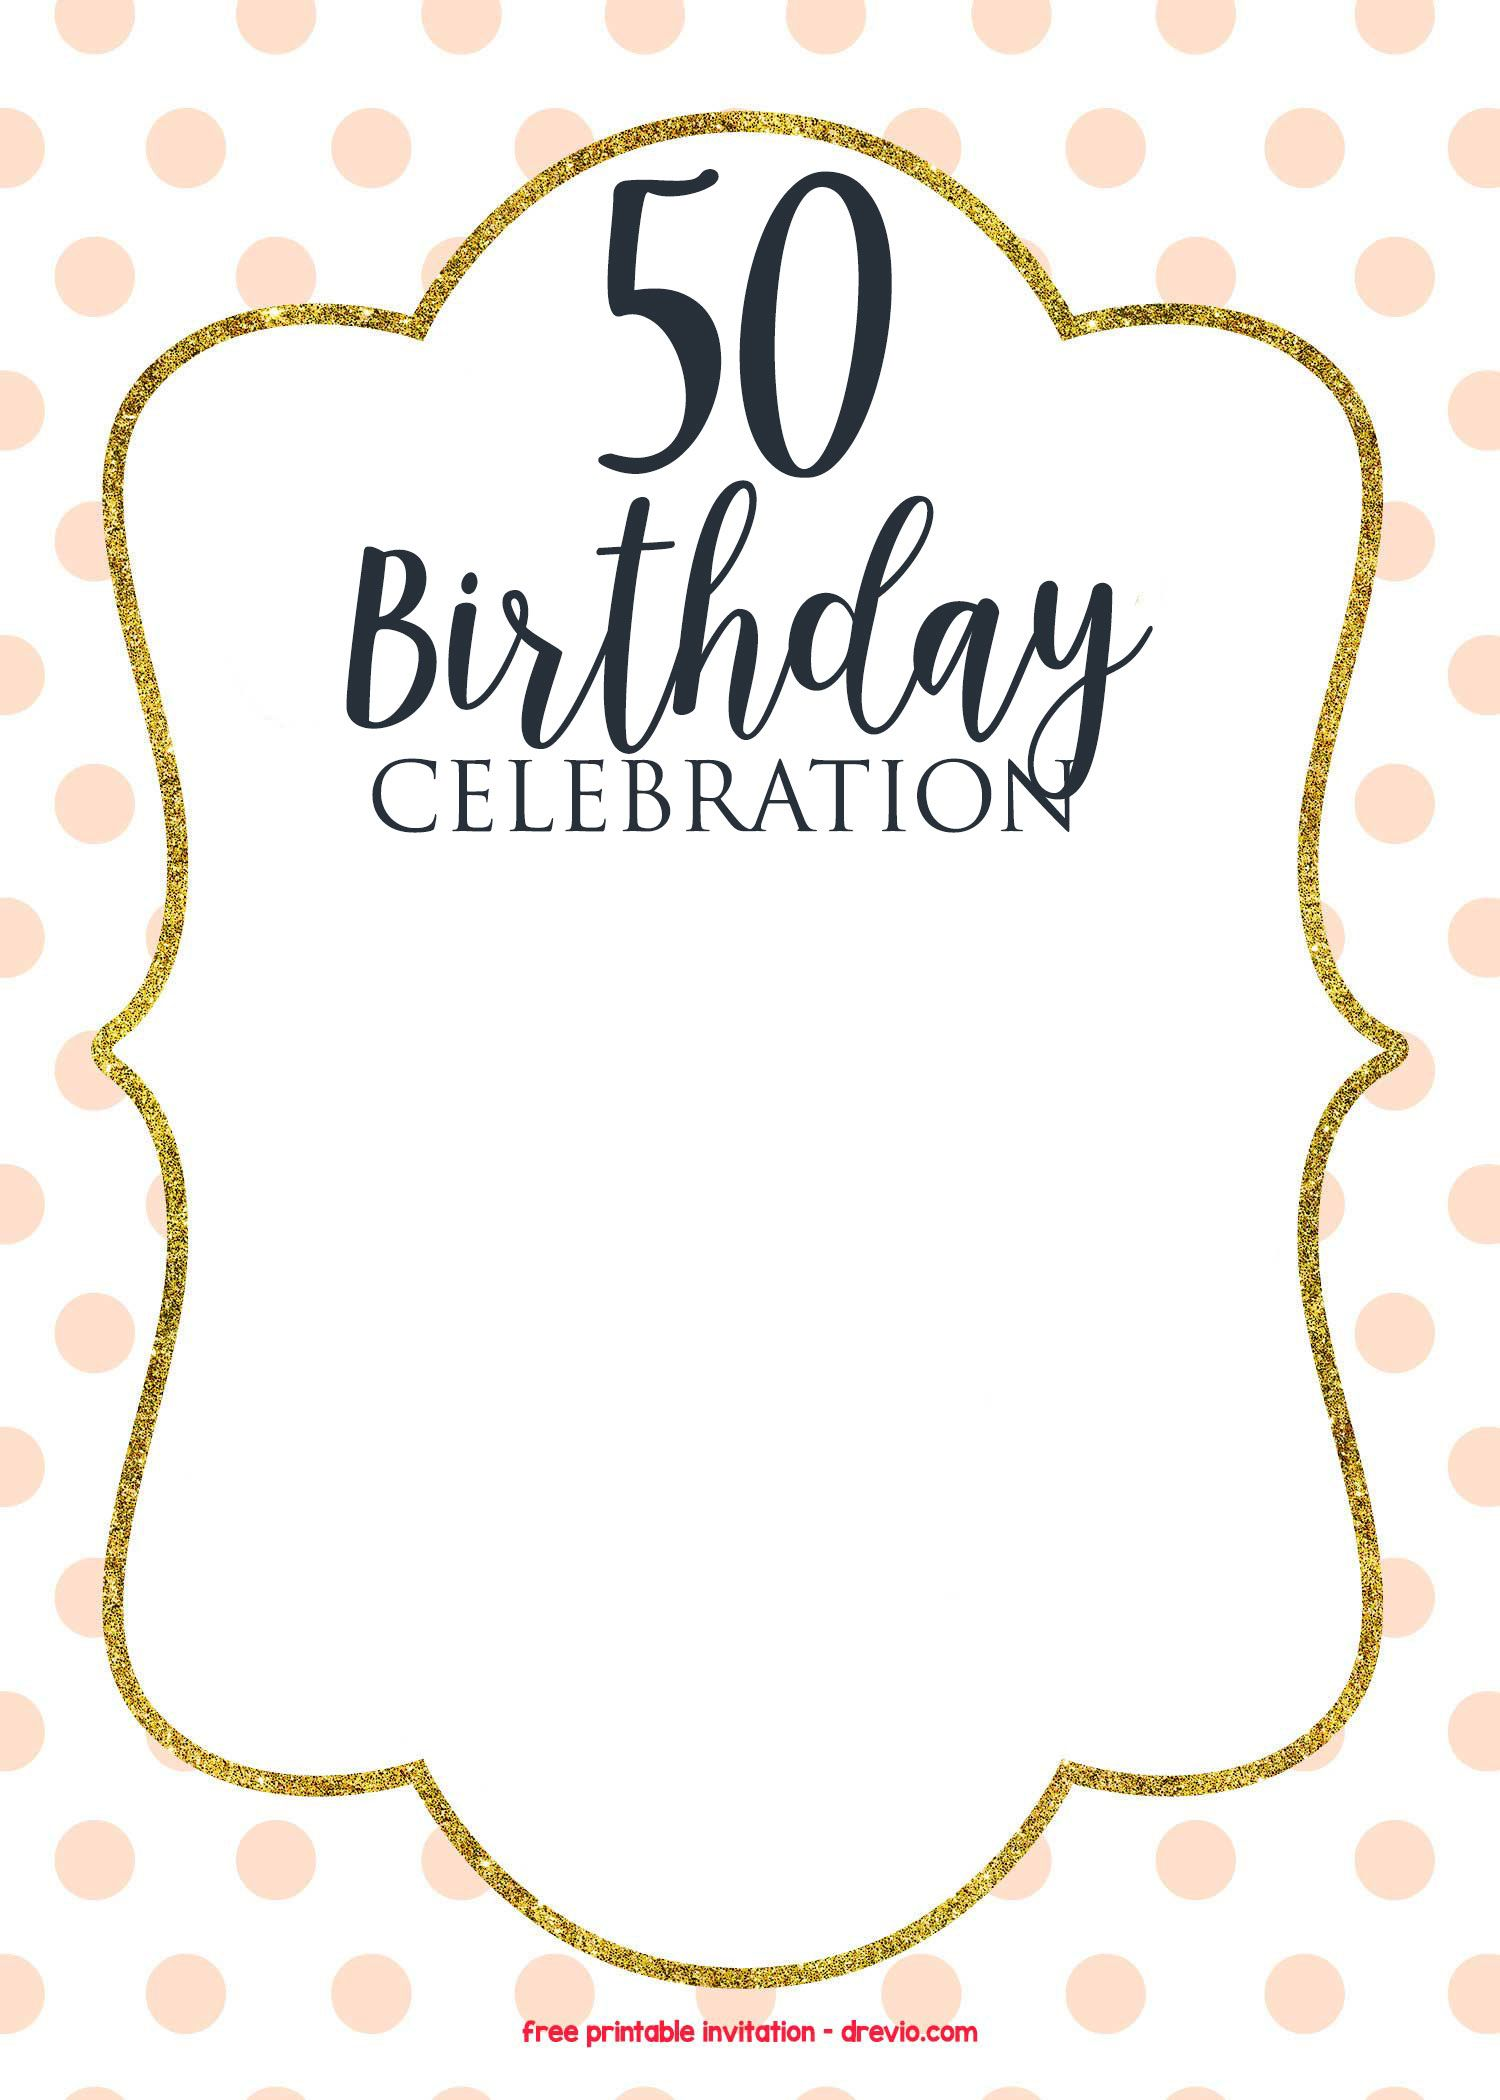 4th Birthday Invitations Online  Free printable birthday